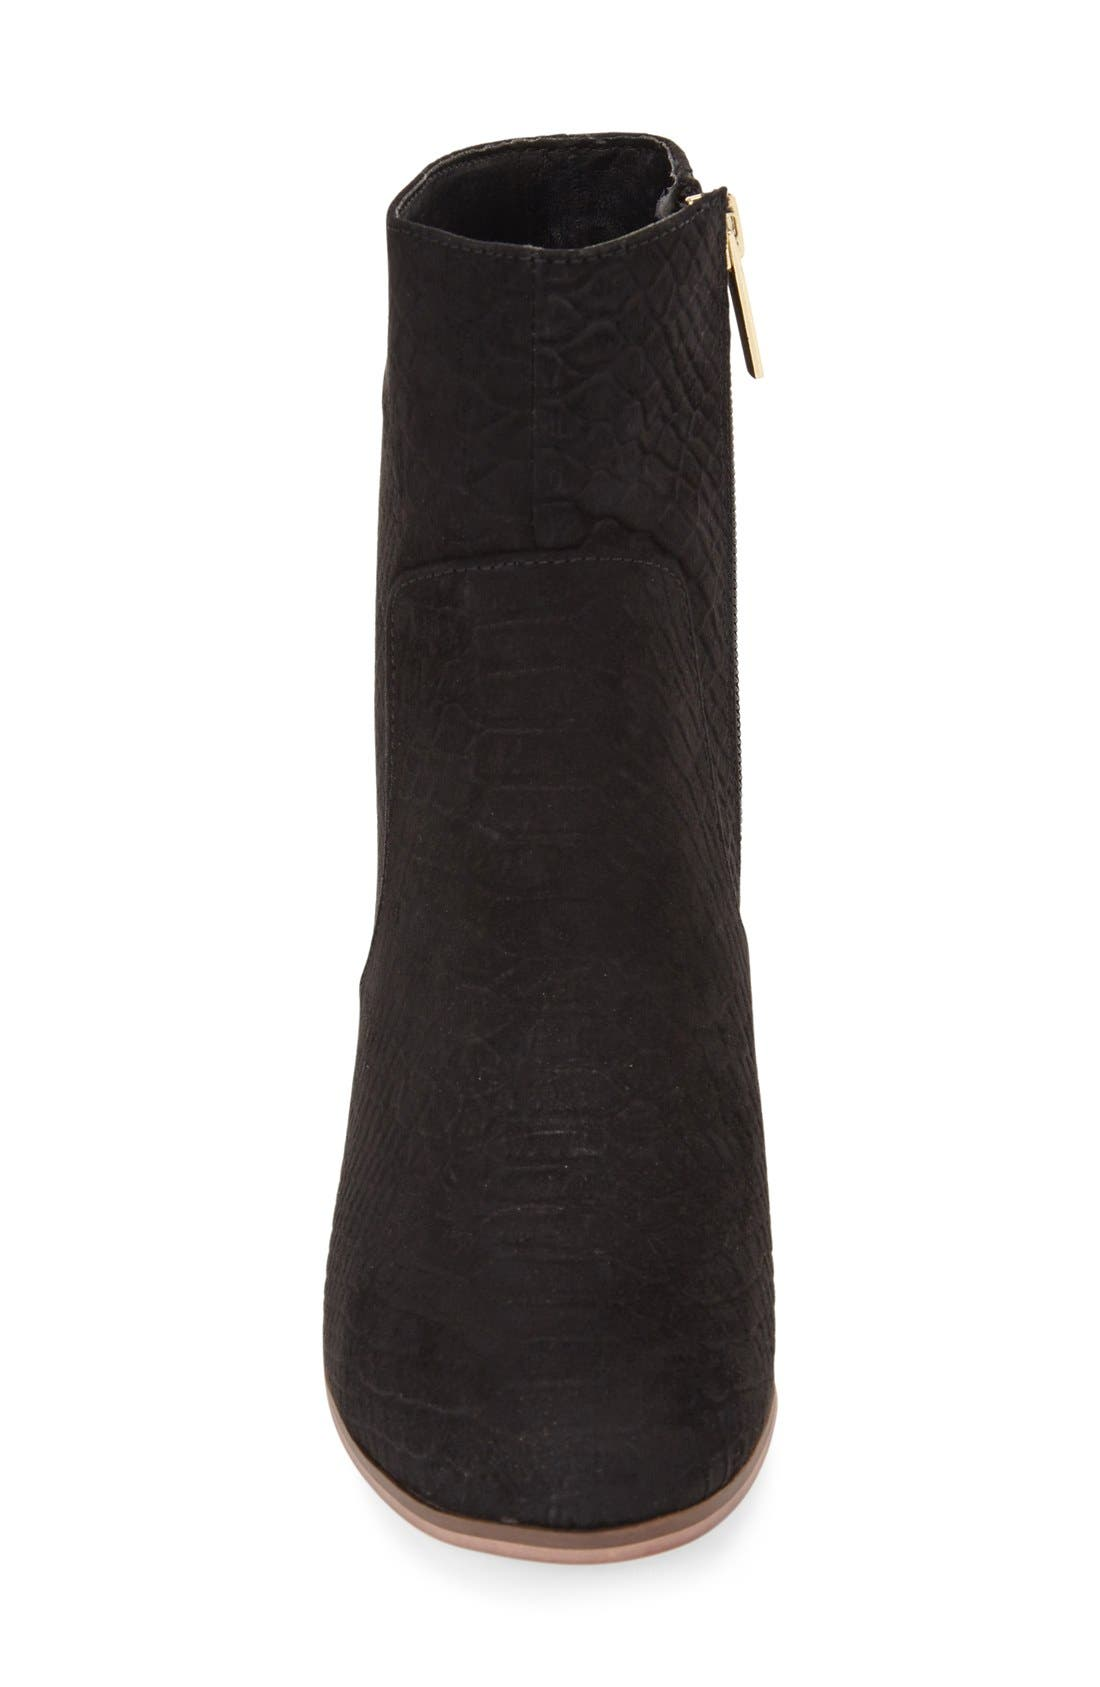 Alternate Image 3  - Topshop 'Bless' Ankle Bootie (Women)